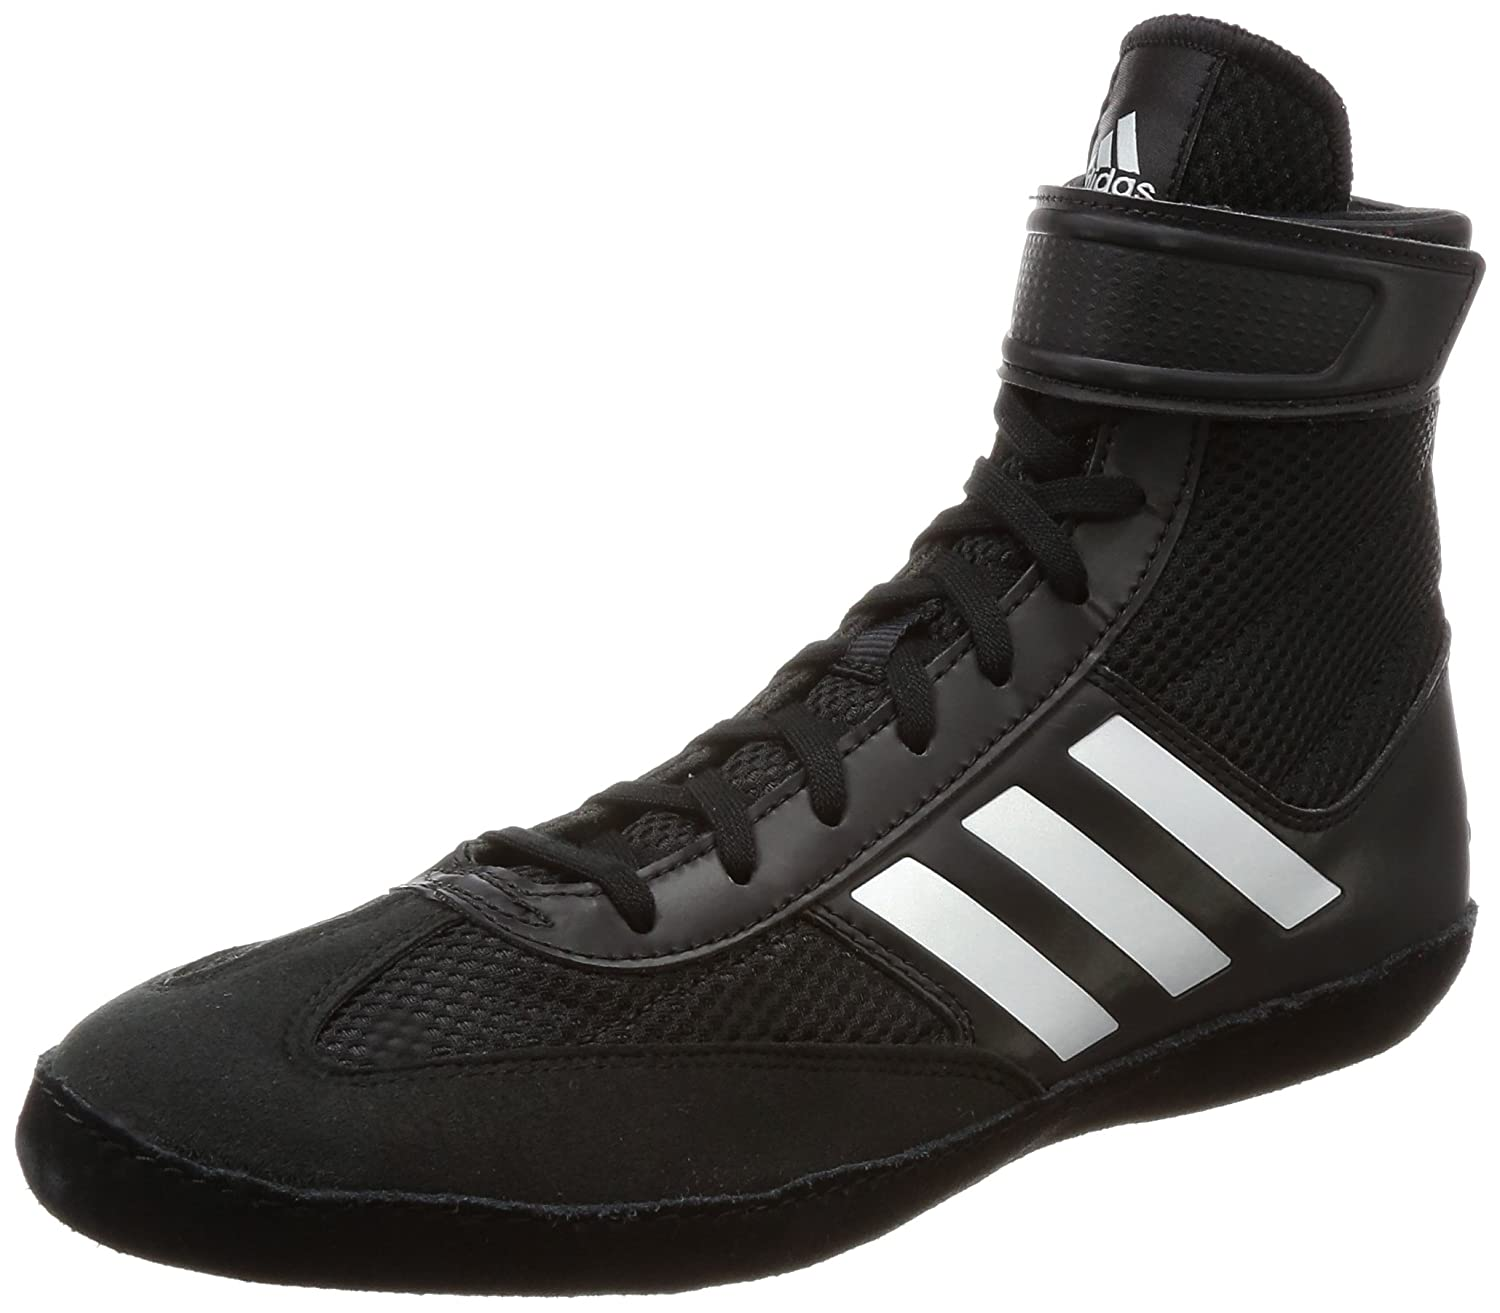 sports shoes 40aa5 82577 adidas Combat Speed 5 Wrestling Shoes - SS18  Amazon.co.uk  Shoes   Bags